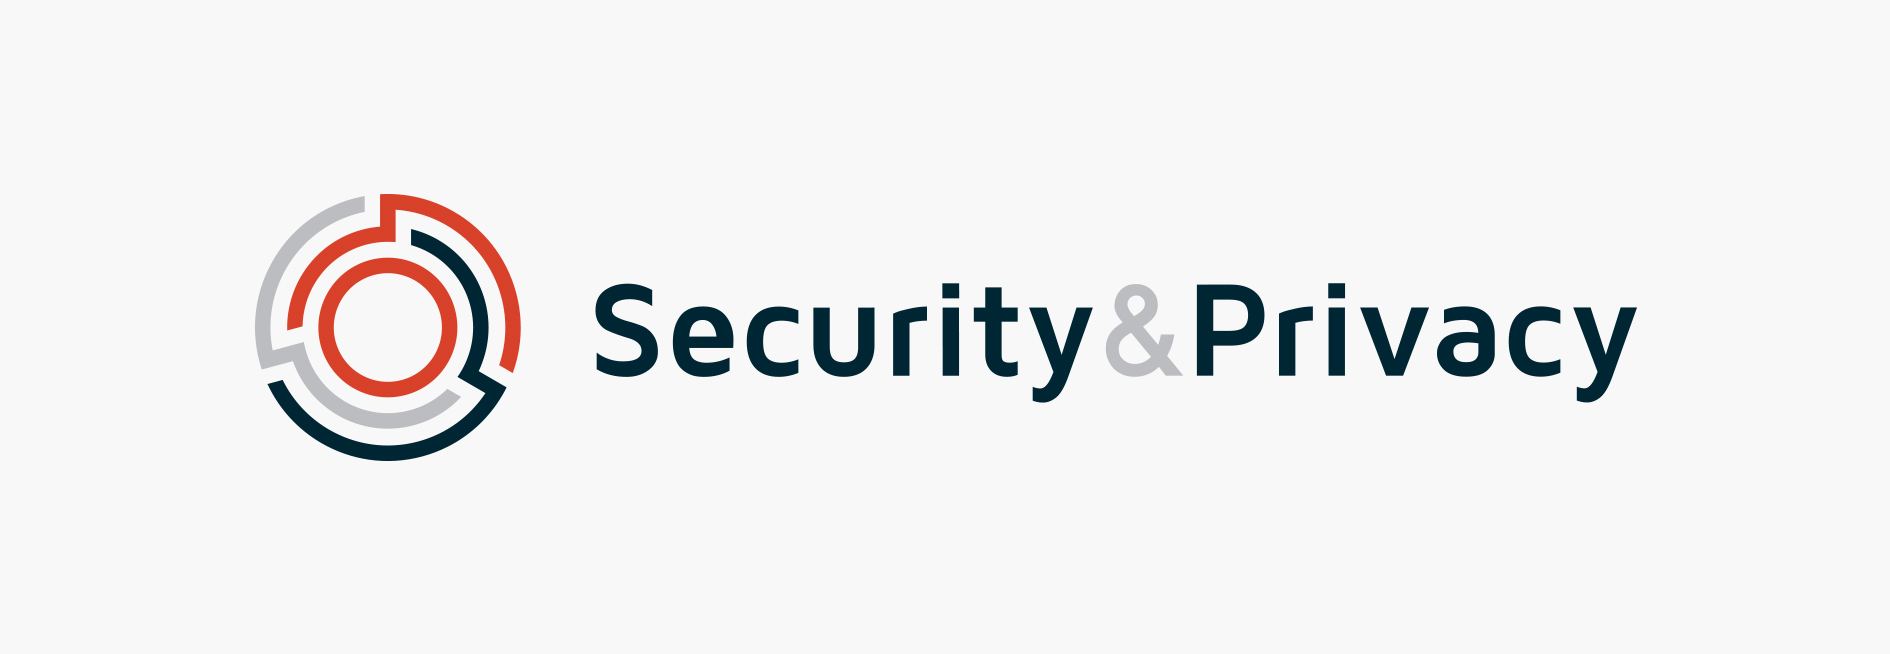 Security-Logo.jpg